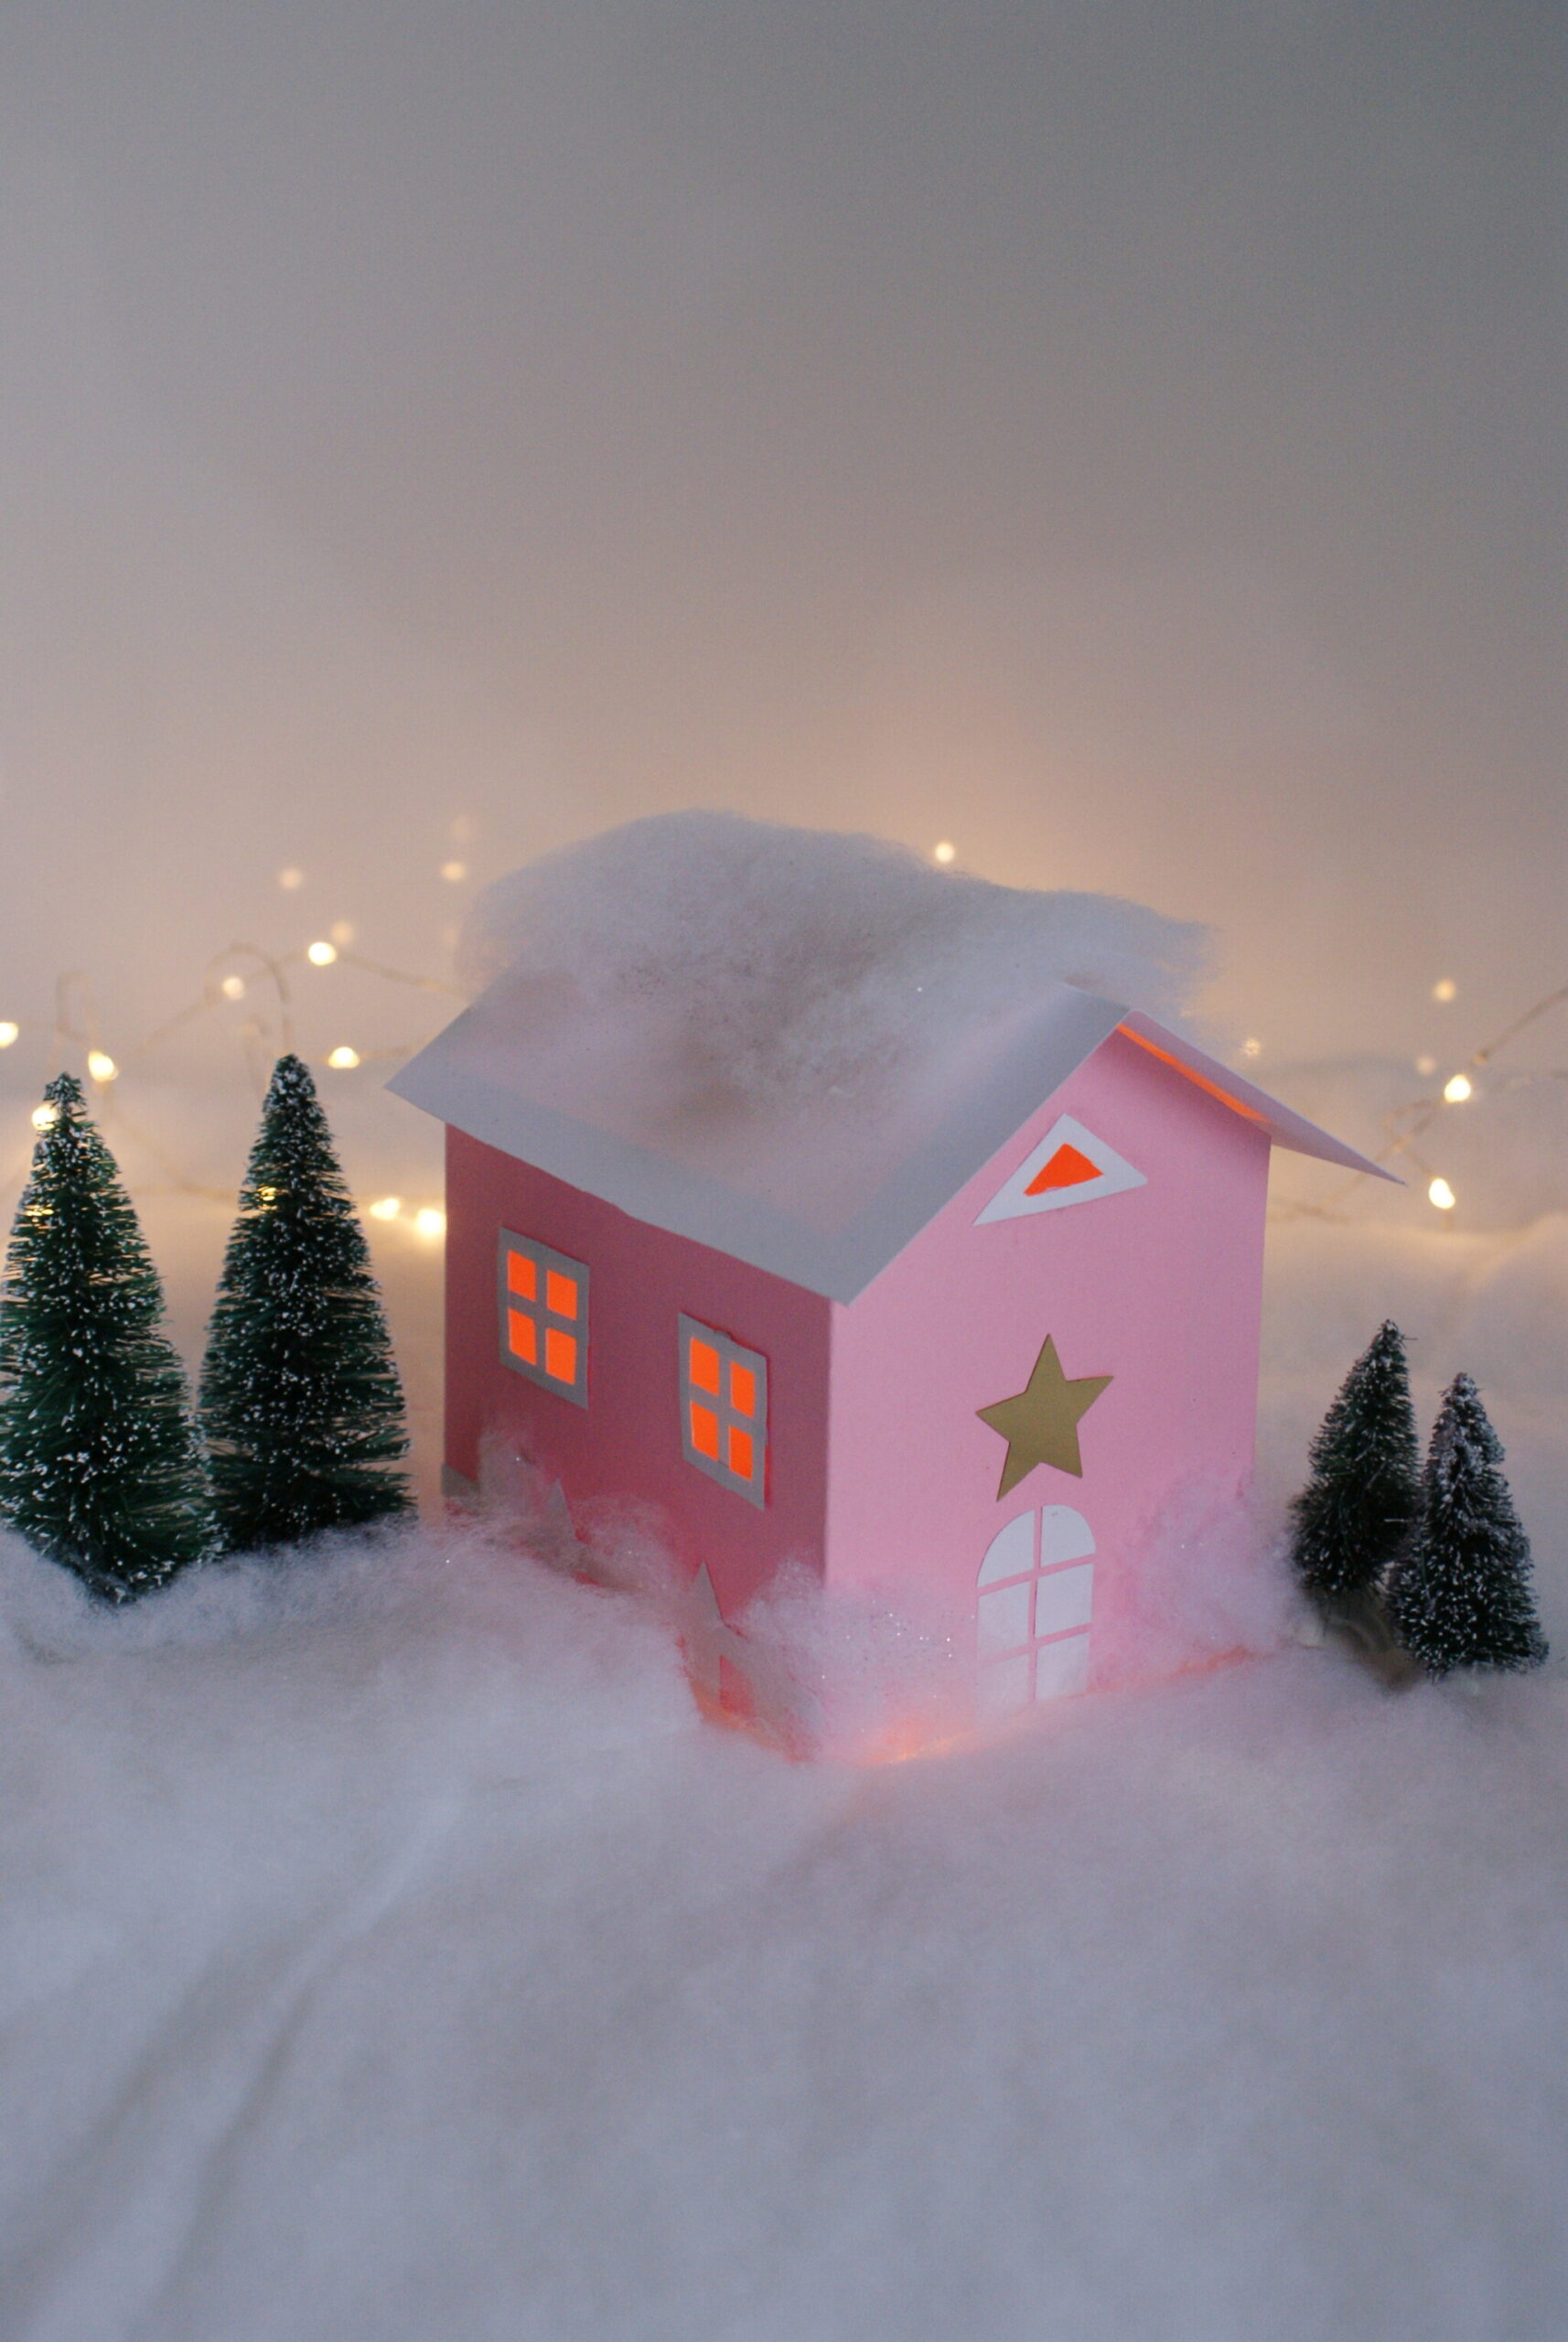 diy paper house christmas winter scene village craft idea decor home easy tutorial glitter fairy francinesplaceblog